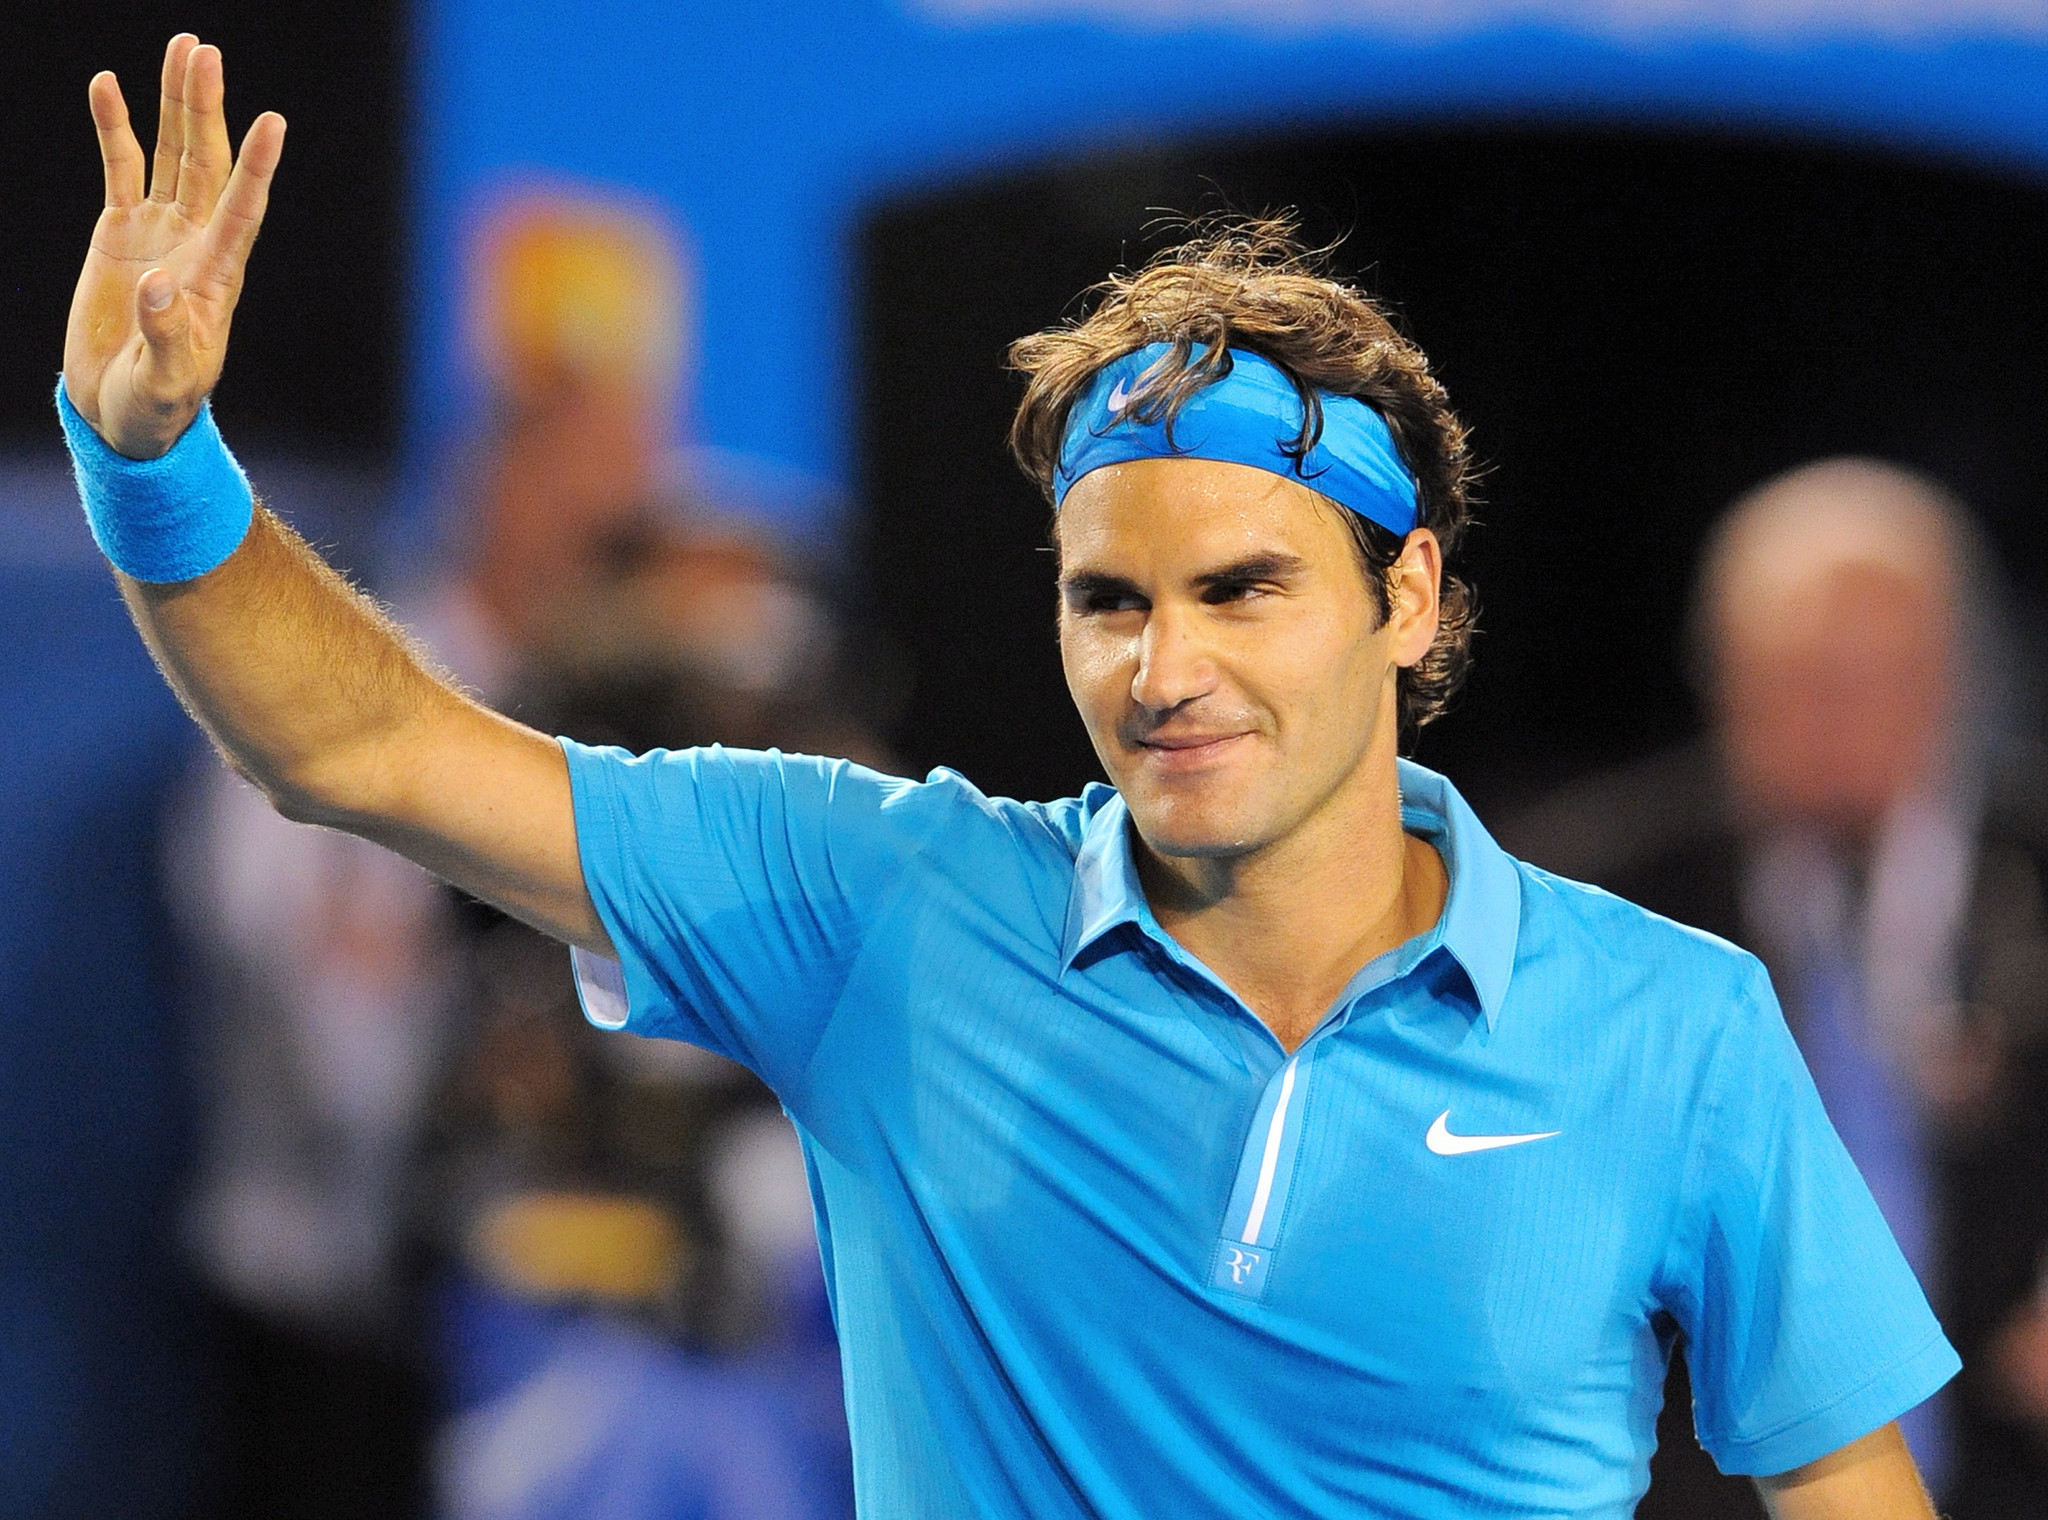 Roger Federer Picture: Hyde: Roger Federer Is Beating Men's Tour And Father Time